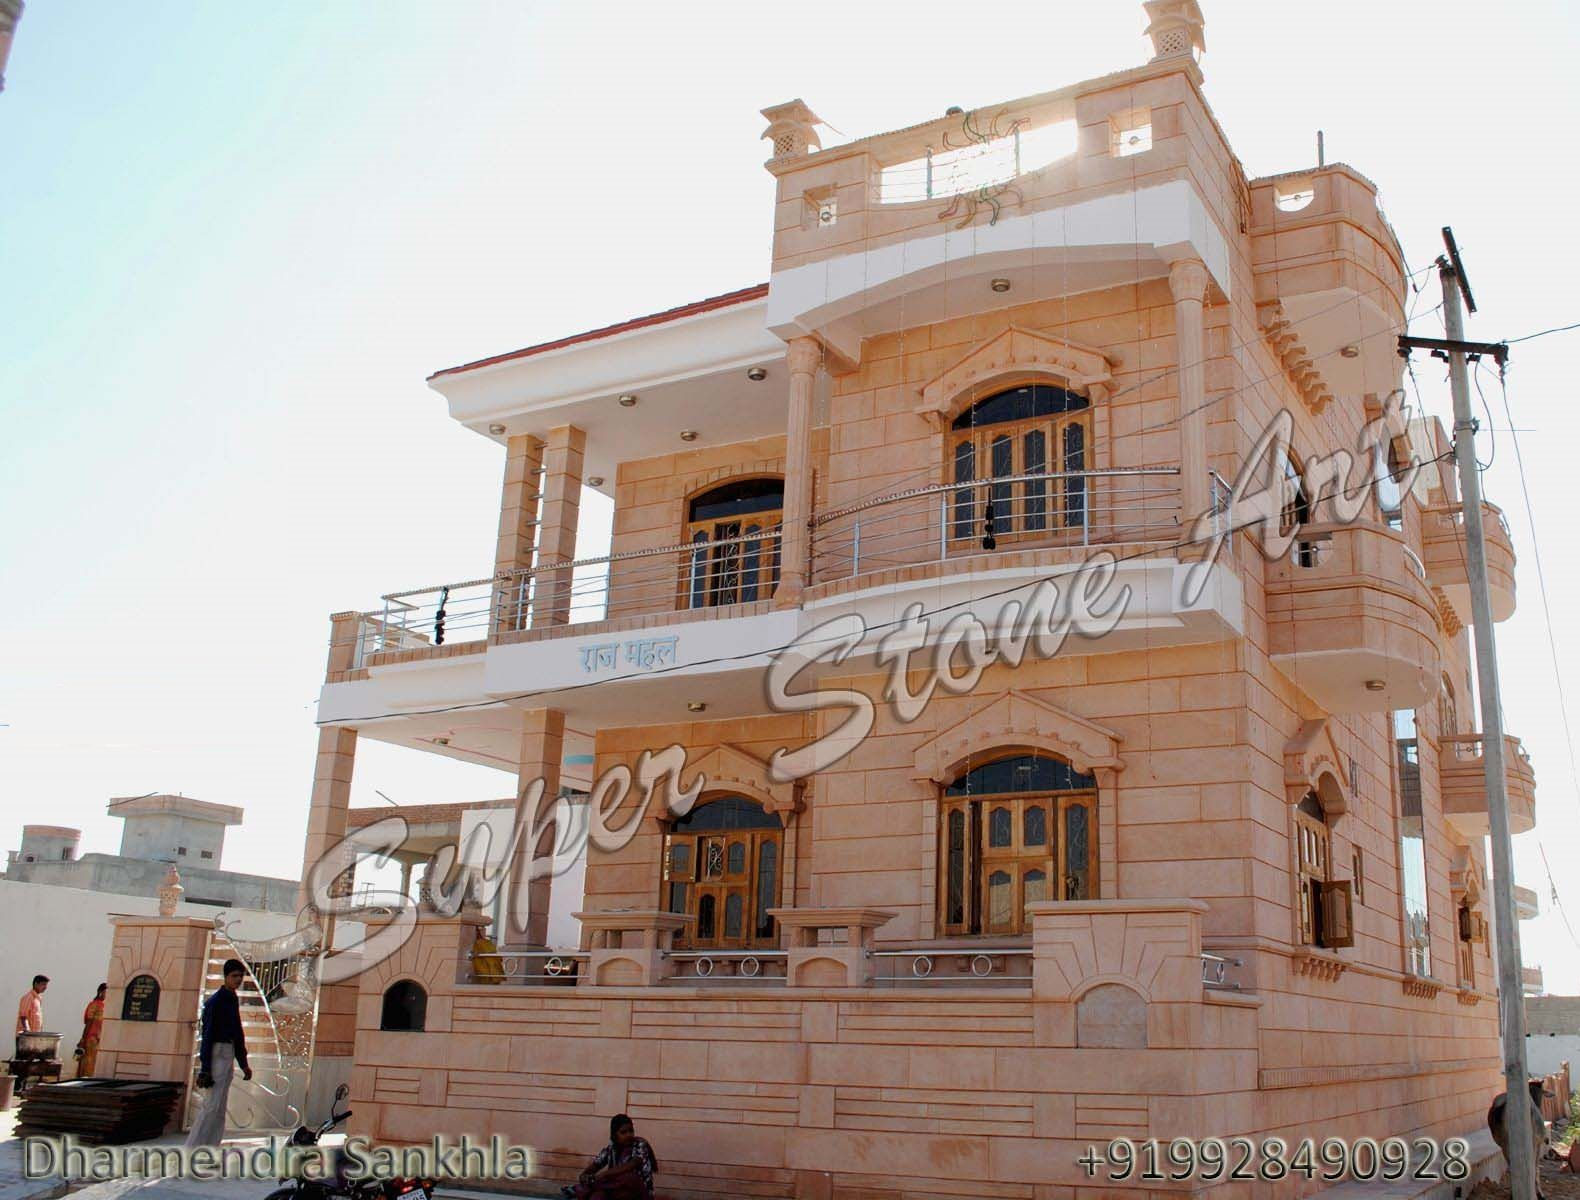 Front elevation designs jodhpur sandstone jodhpur stone Indian building photos